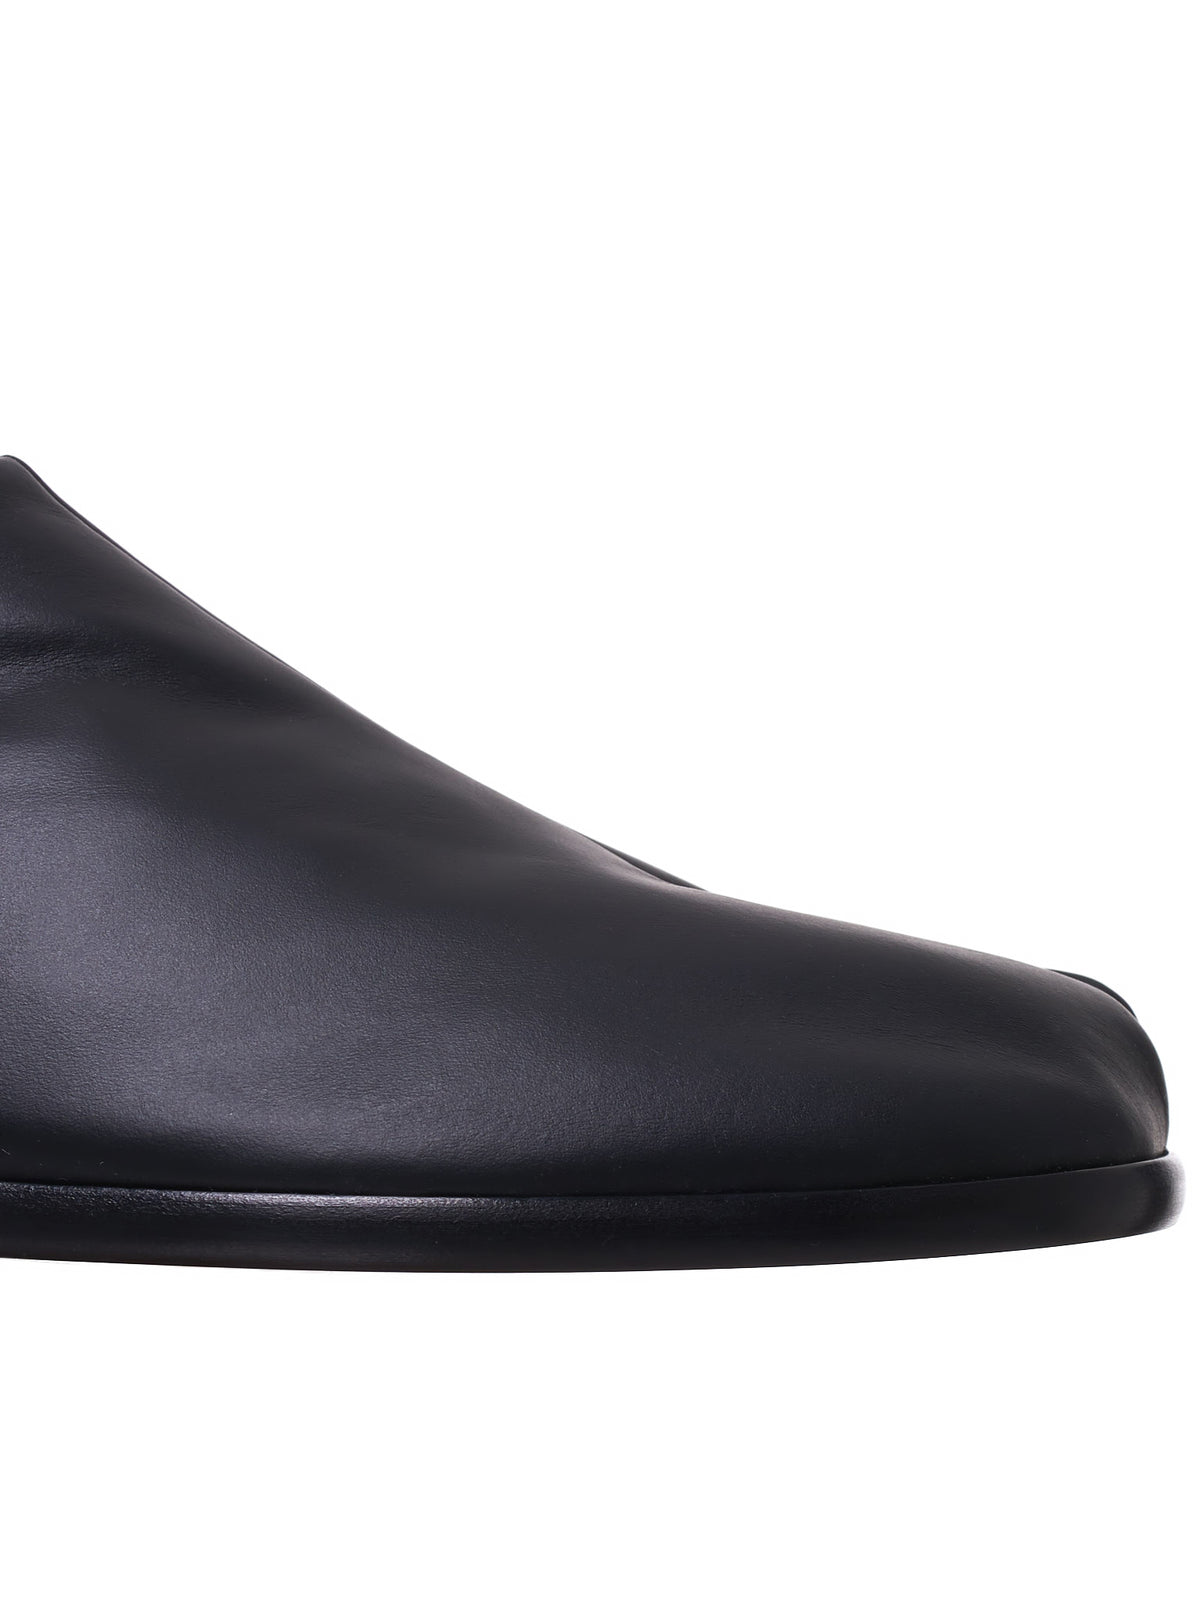 Maison Margiela Loafer - Hlorenzo Detail 2